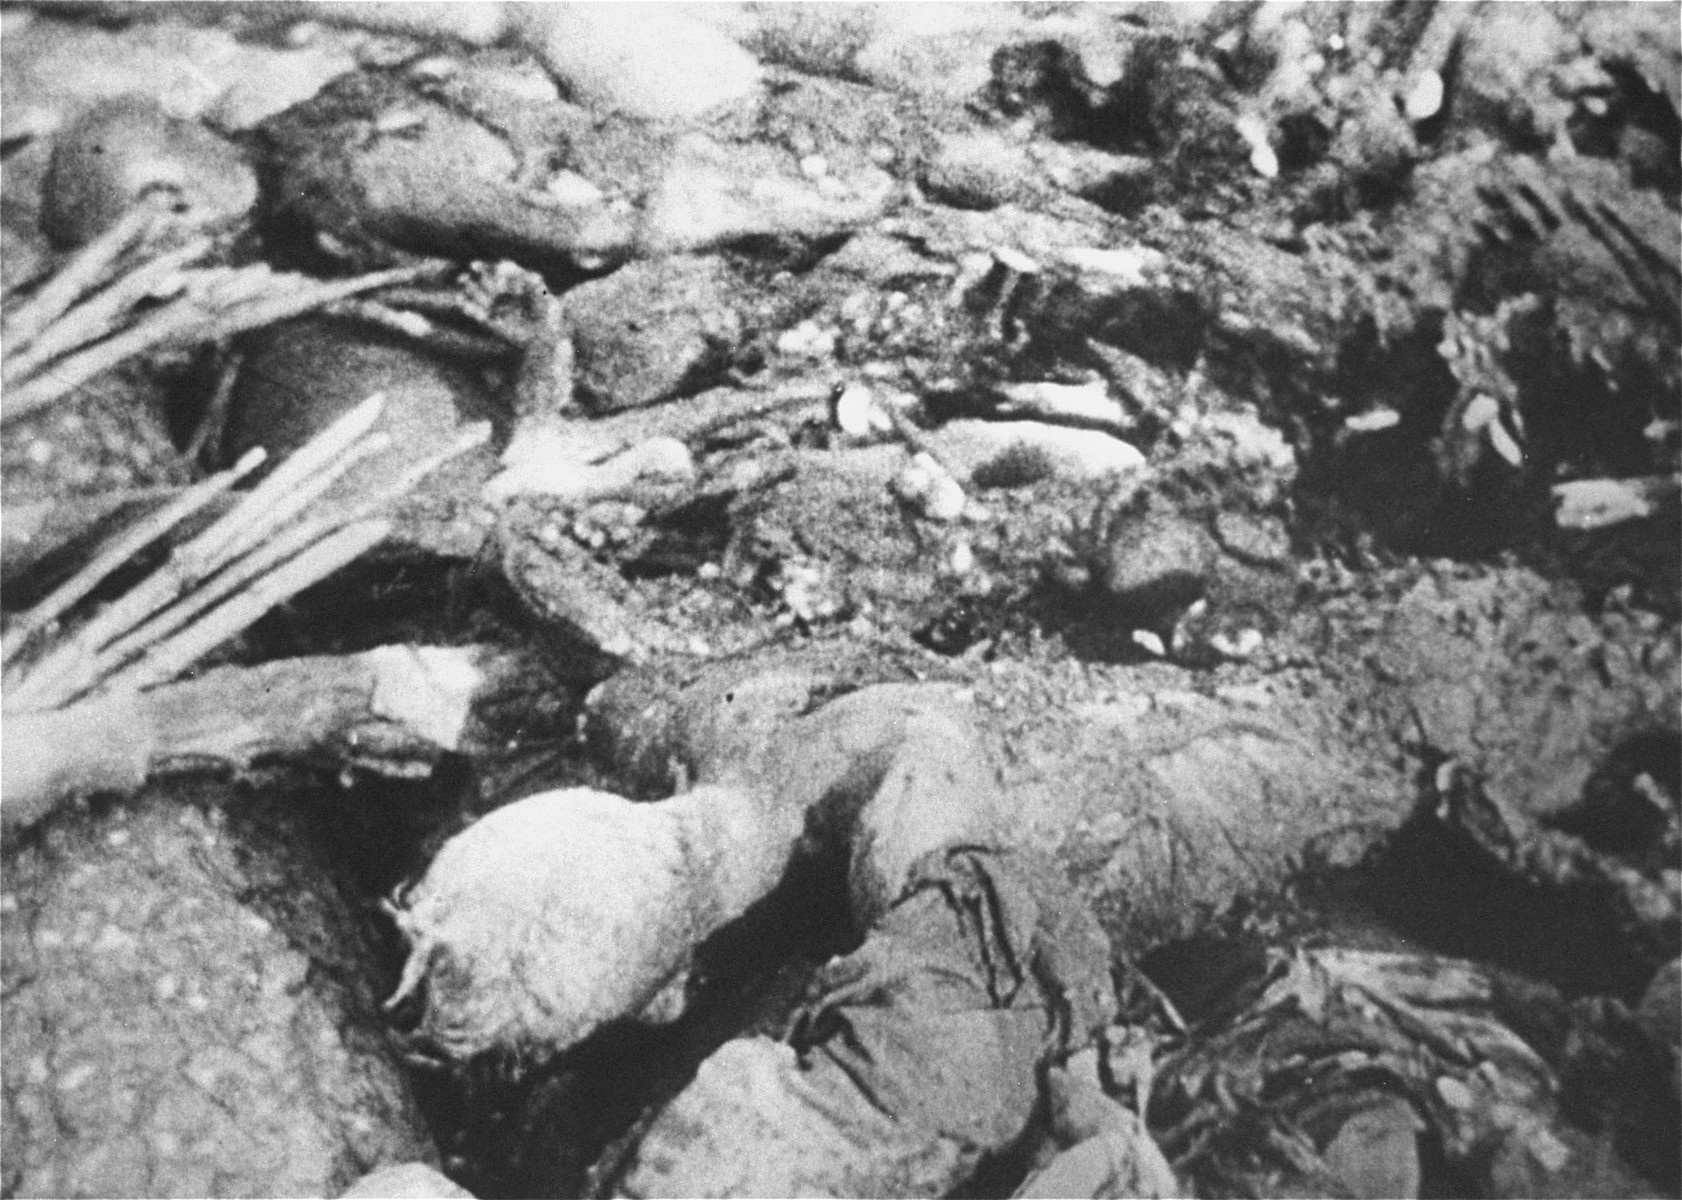 The charred remains of prisoners burned by the Germans before the liberation of the Maly Trostinets concentration camp.